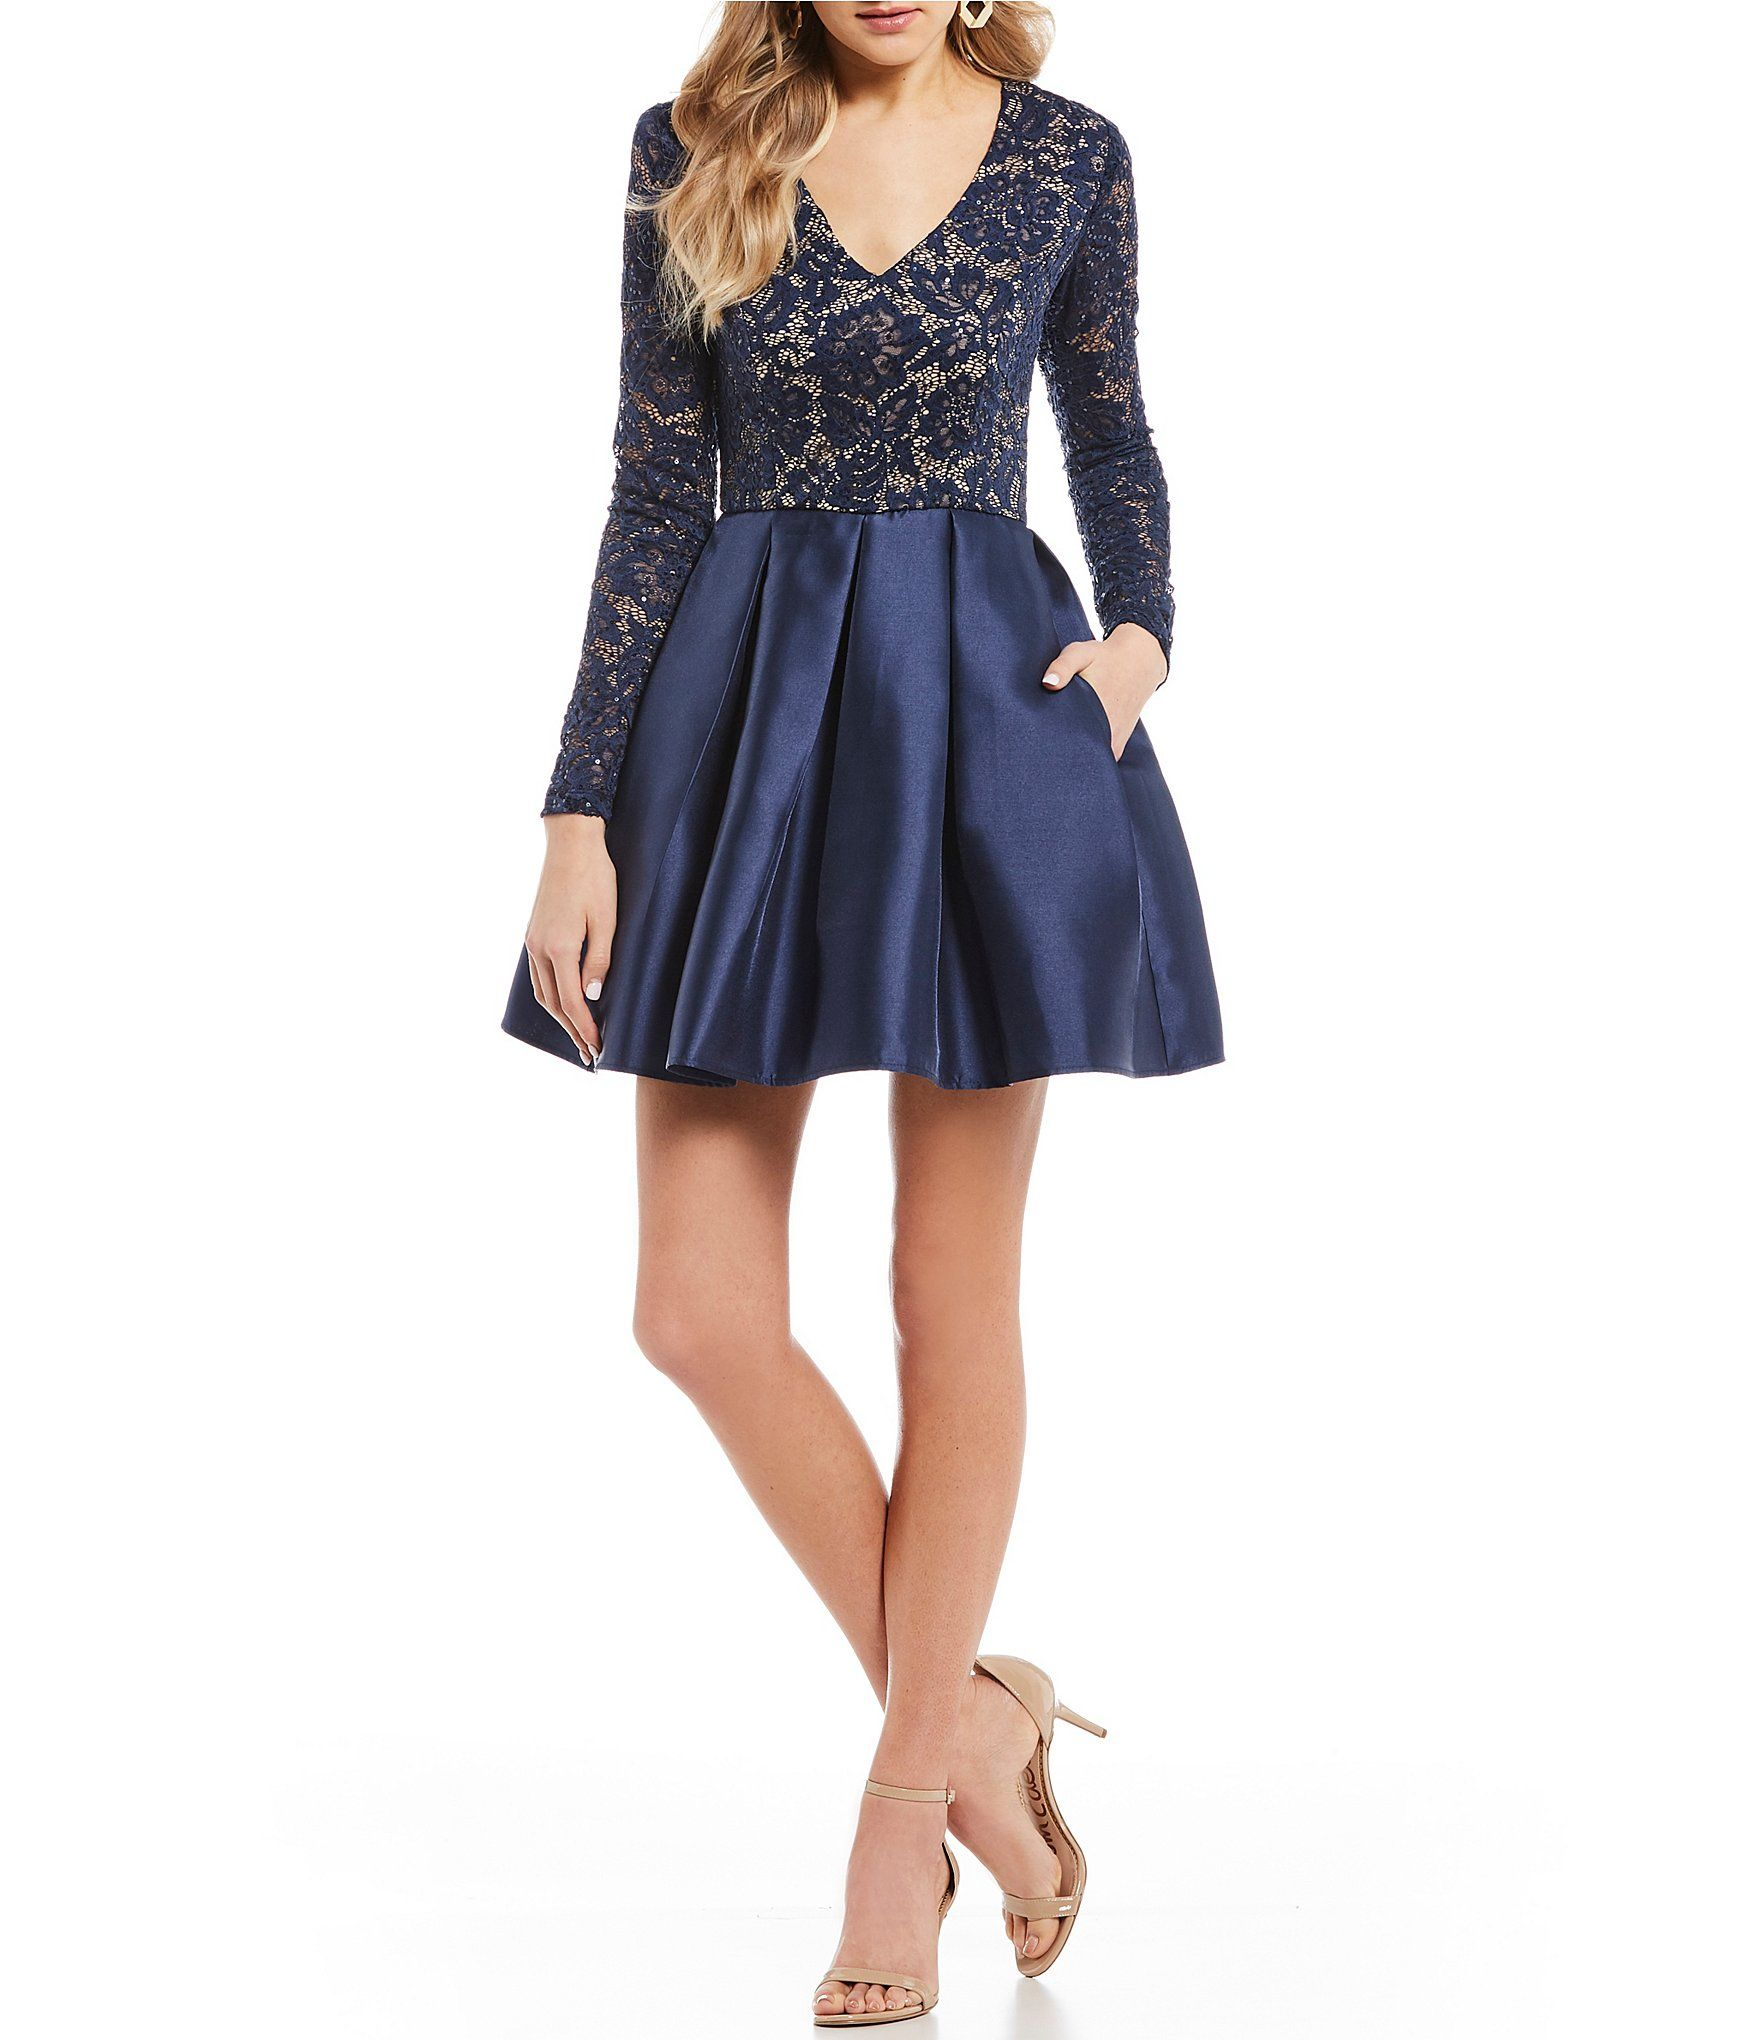 Shop For Teeze Me Sequin Lace With Satin Fit And Flare